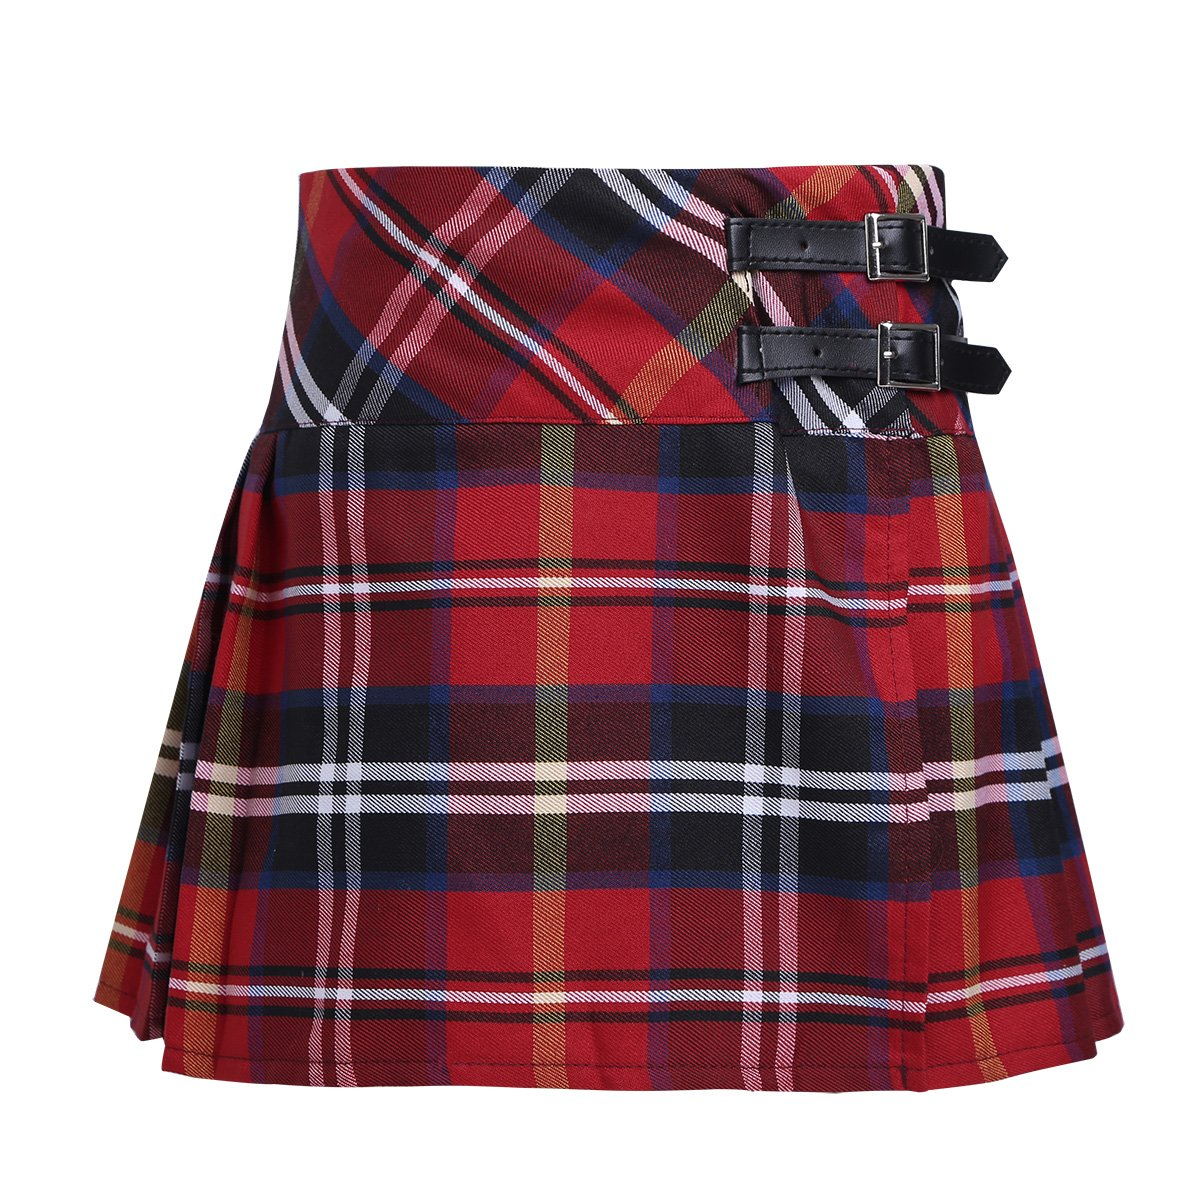 1492deeb48 iiniim Girls School Uniform Skirt Pleated Scooters Skort Mini Skirt with  Hidden Shorts Red Plaid 8